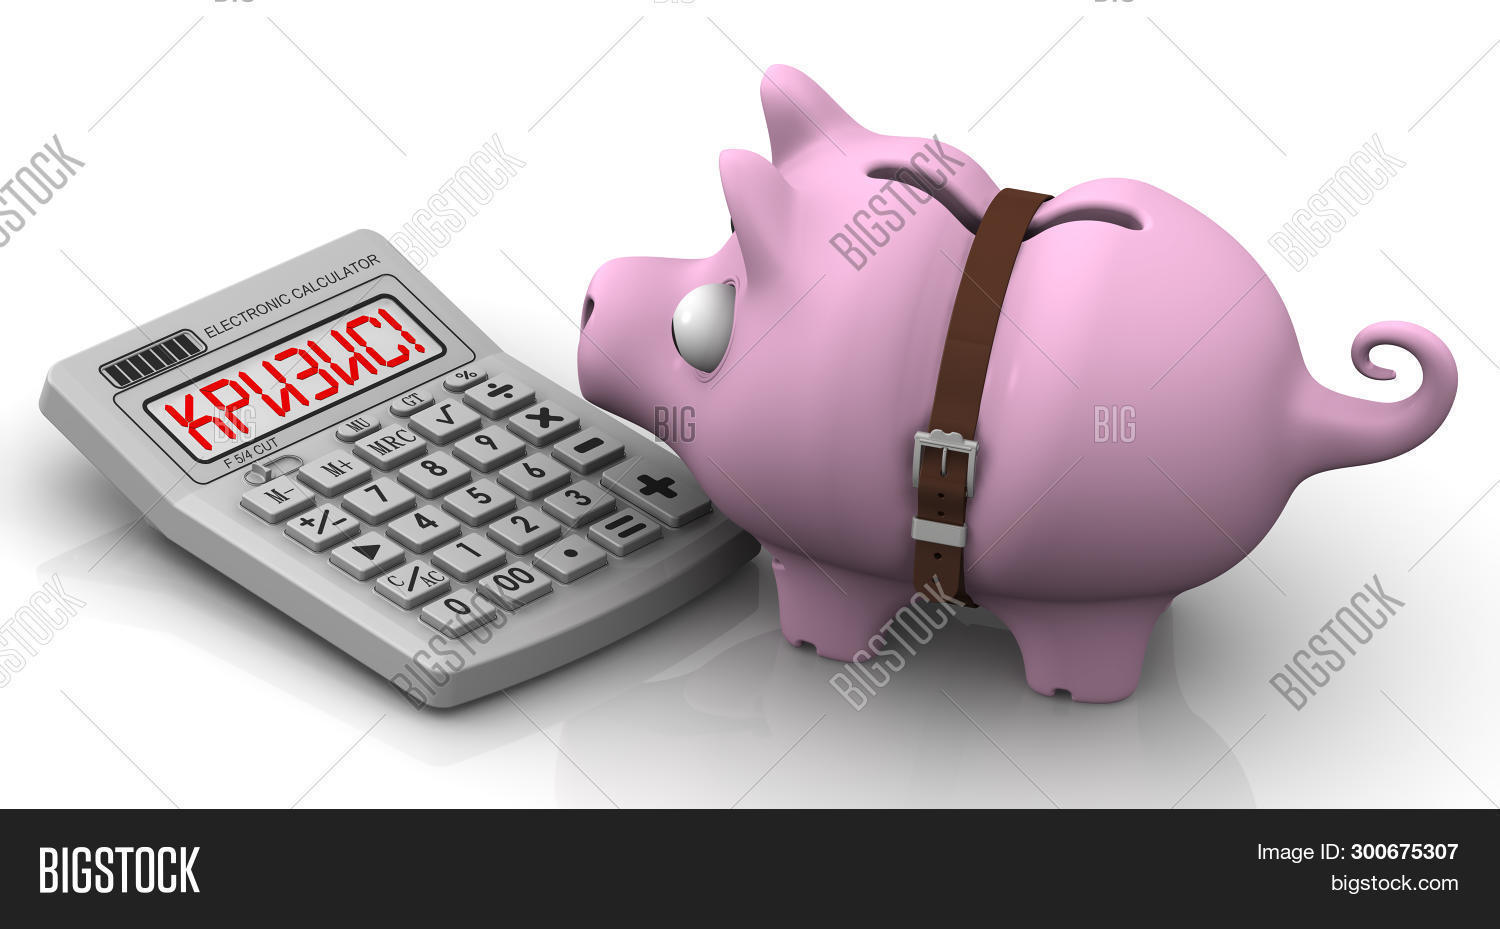 3D,Rendering,background,bank,bankruptcy,belt,business,calculation,calculator,concept,crisis,default,digitally,economy,eyes,finance,funny,generated,image,isolated,mumps,no,people,pig,piggy,pink,red,sad,strap,swine,symbol,tightened,white,word